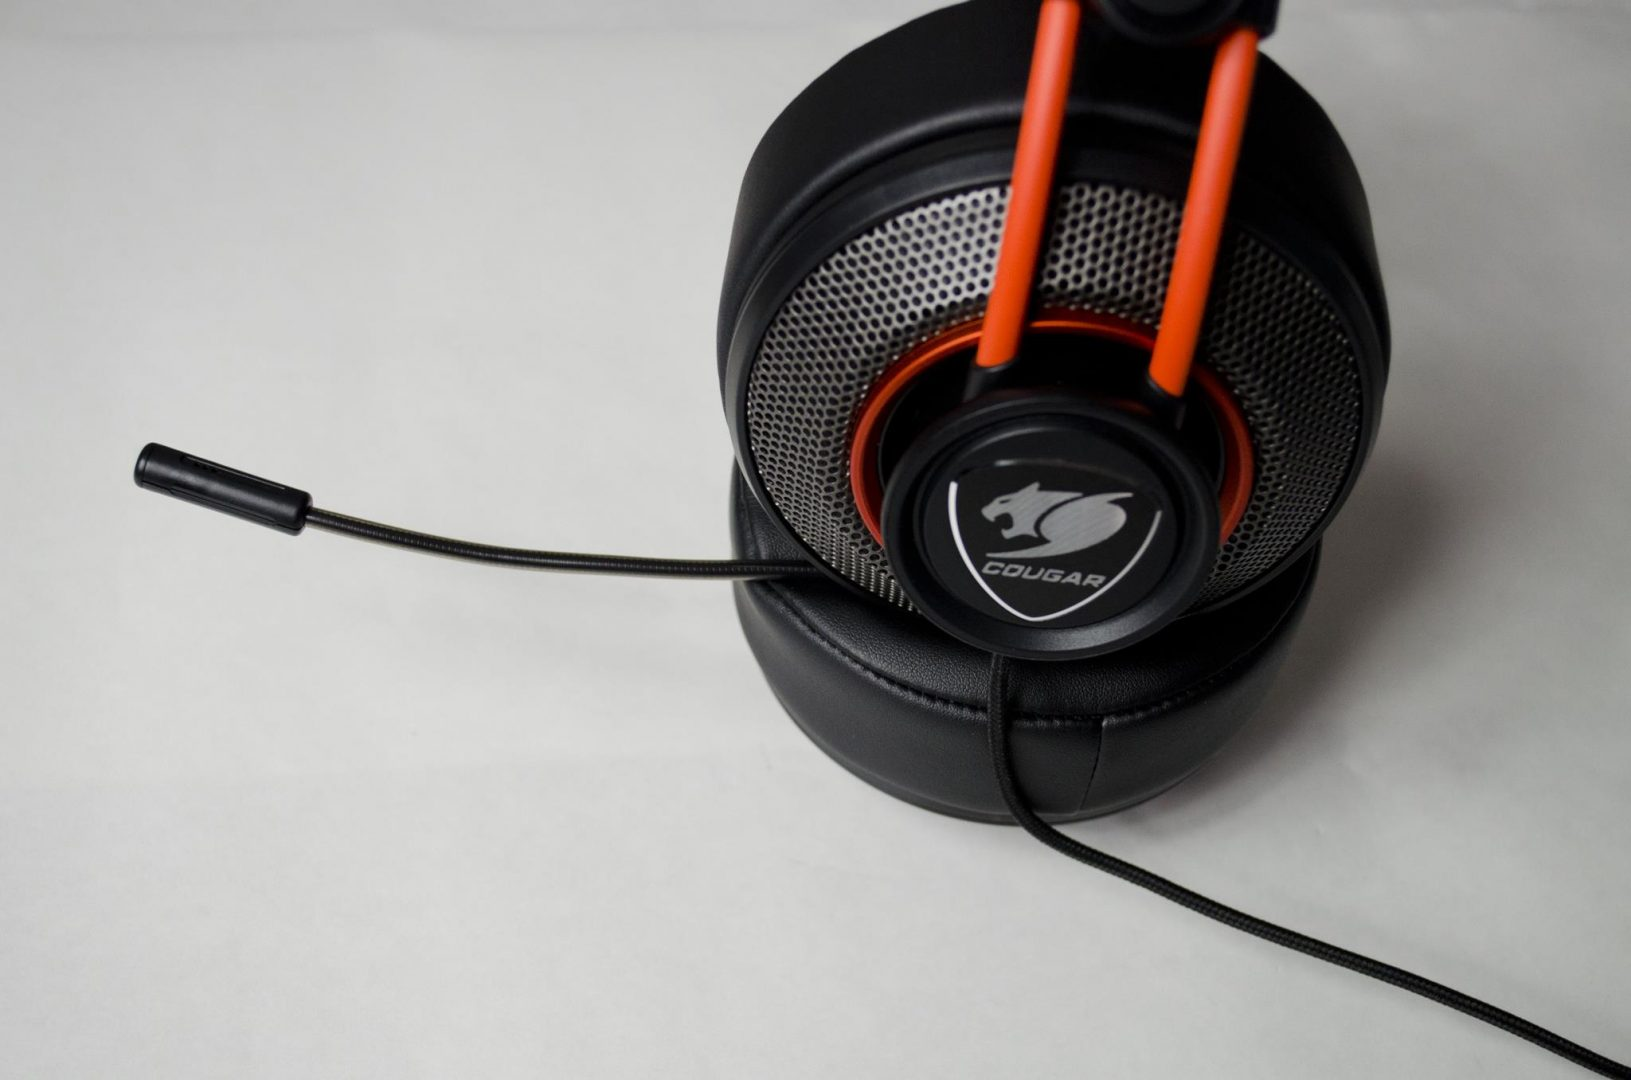 cougar immera headset review_10